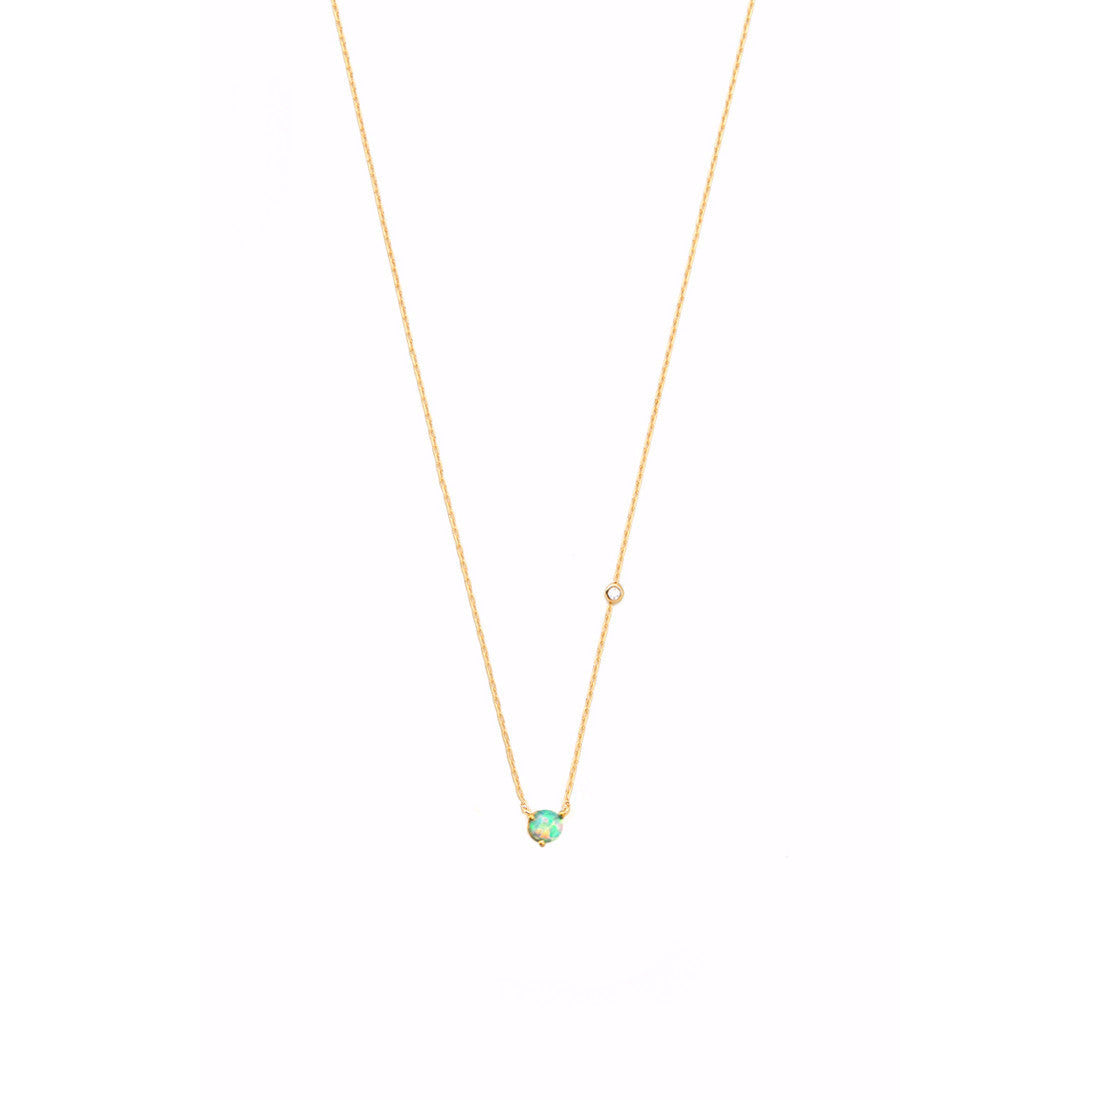 MINI OPAL PENDANT NECKLACE